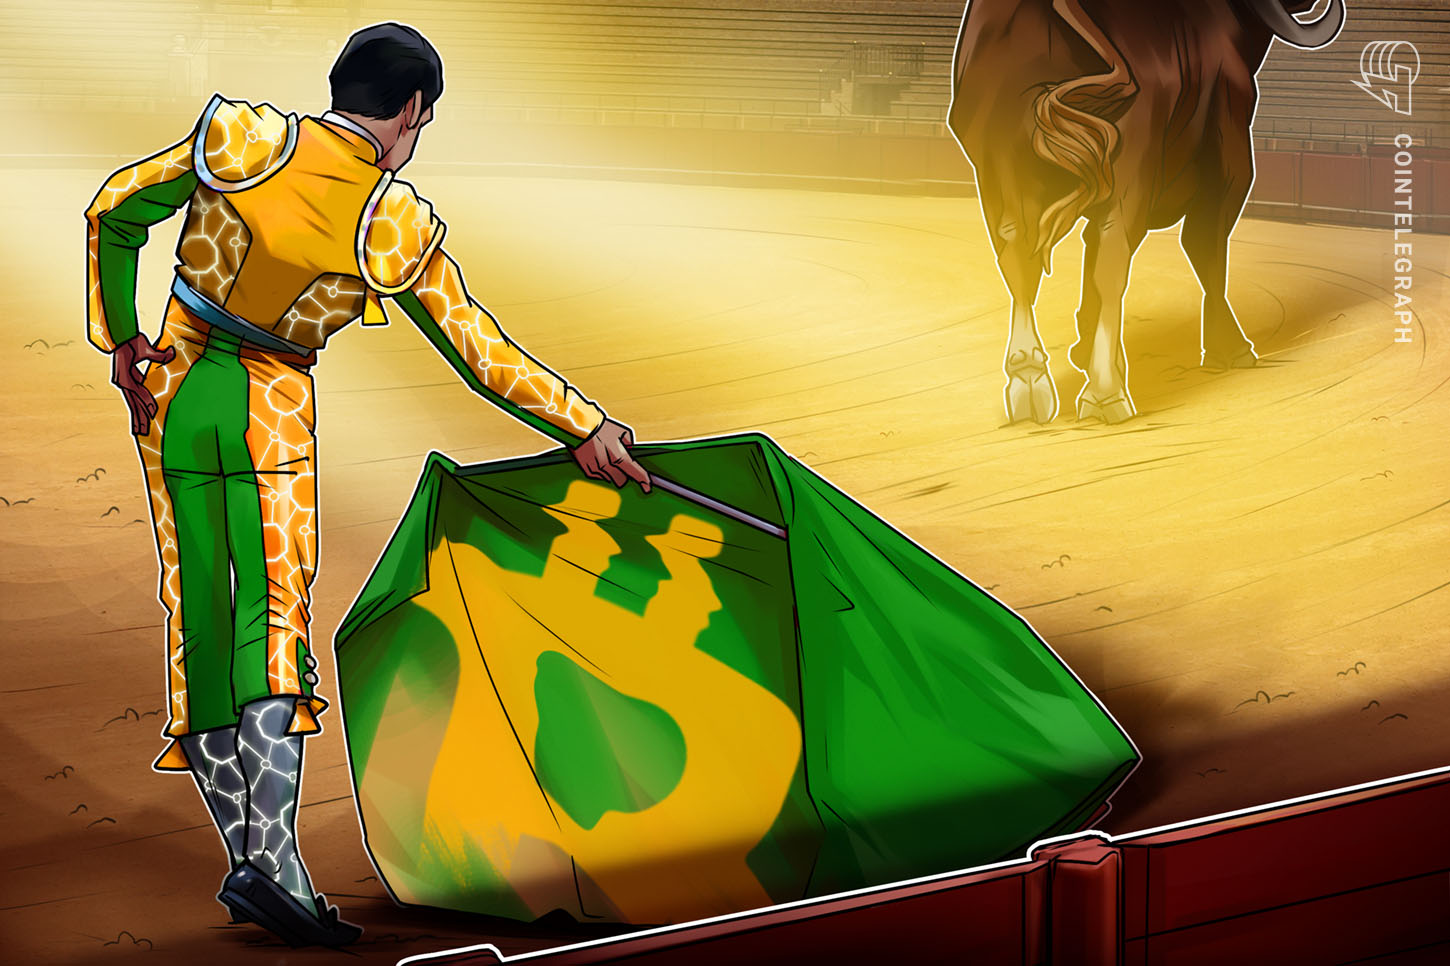 After dropping 4.89% to confirm $11.4K as support, Bitcoin price is slowly making its way back toward $11.8K.